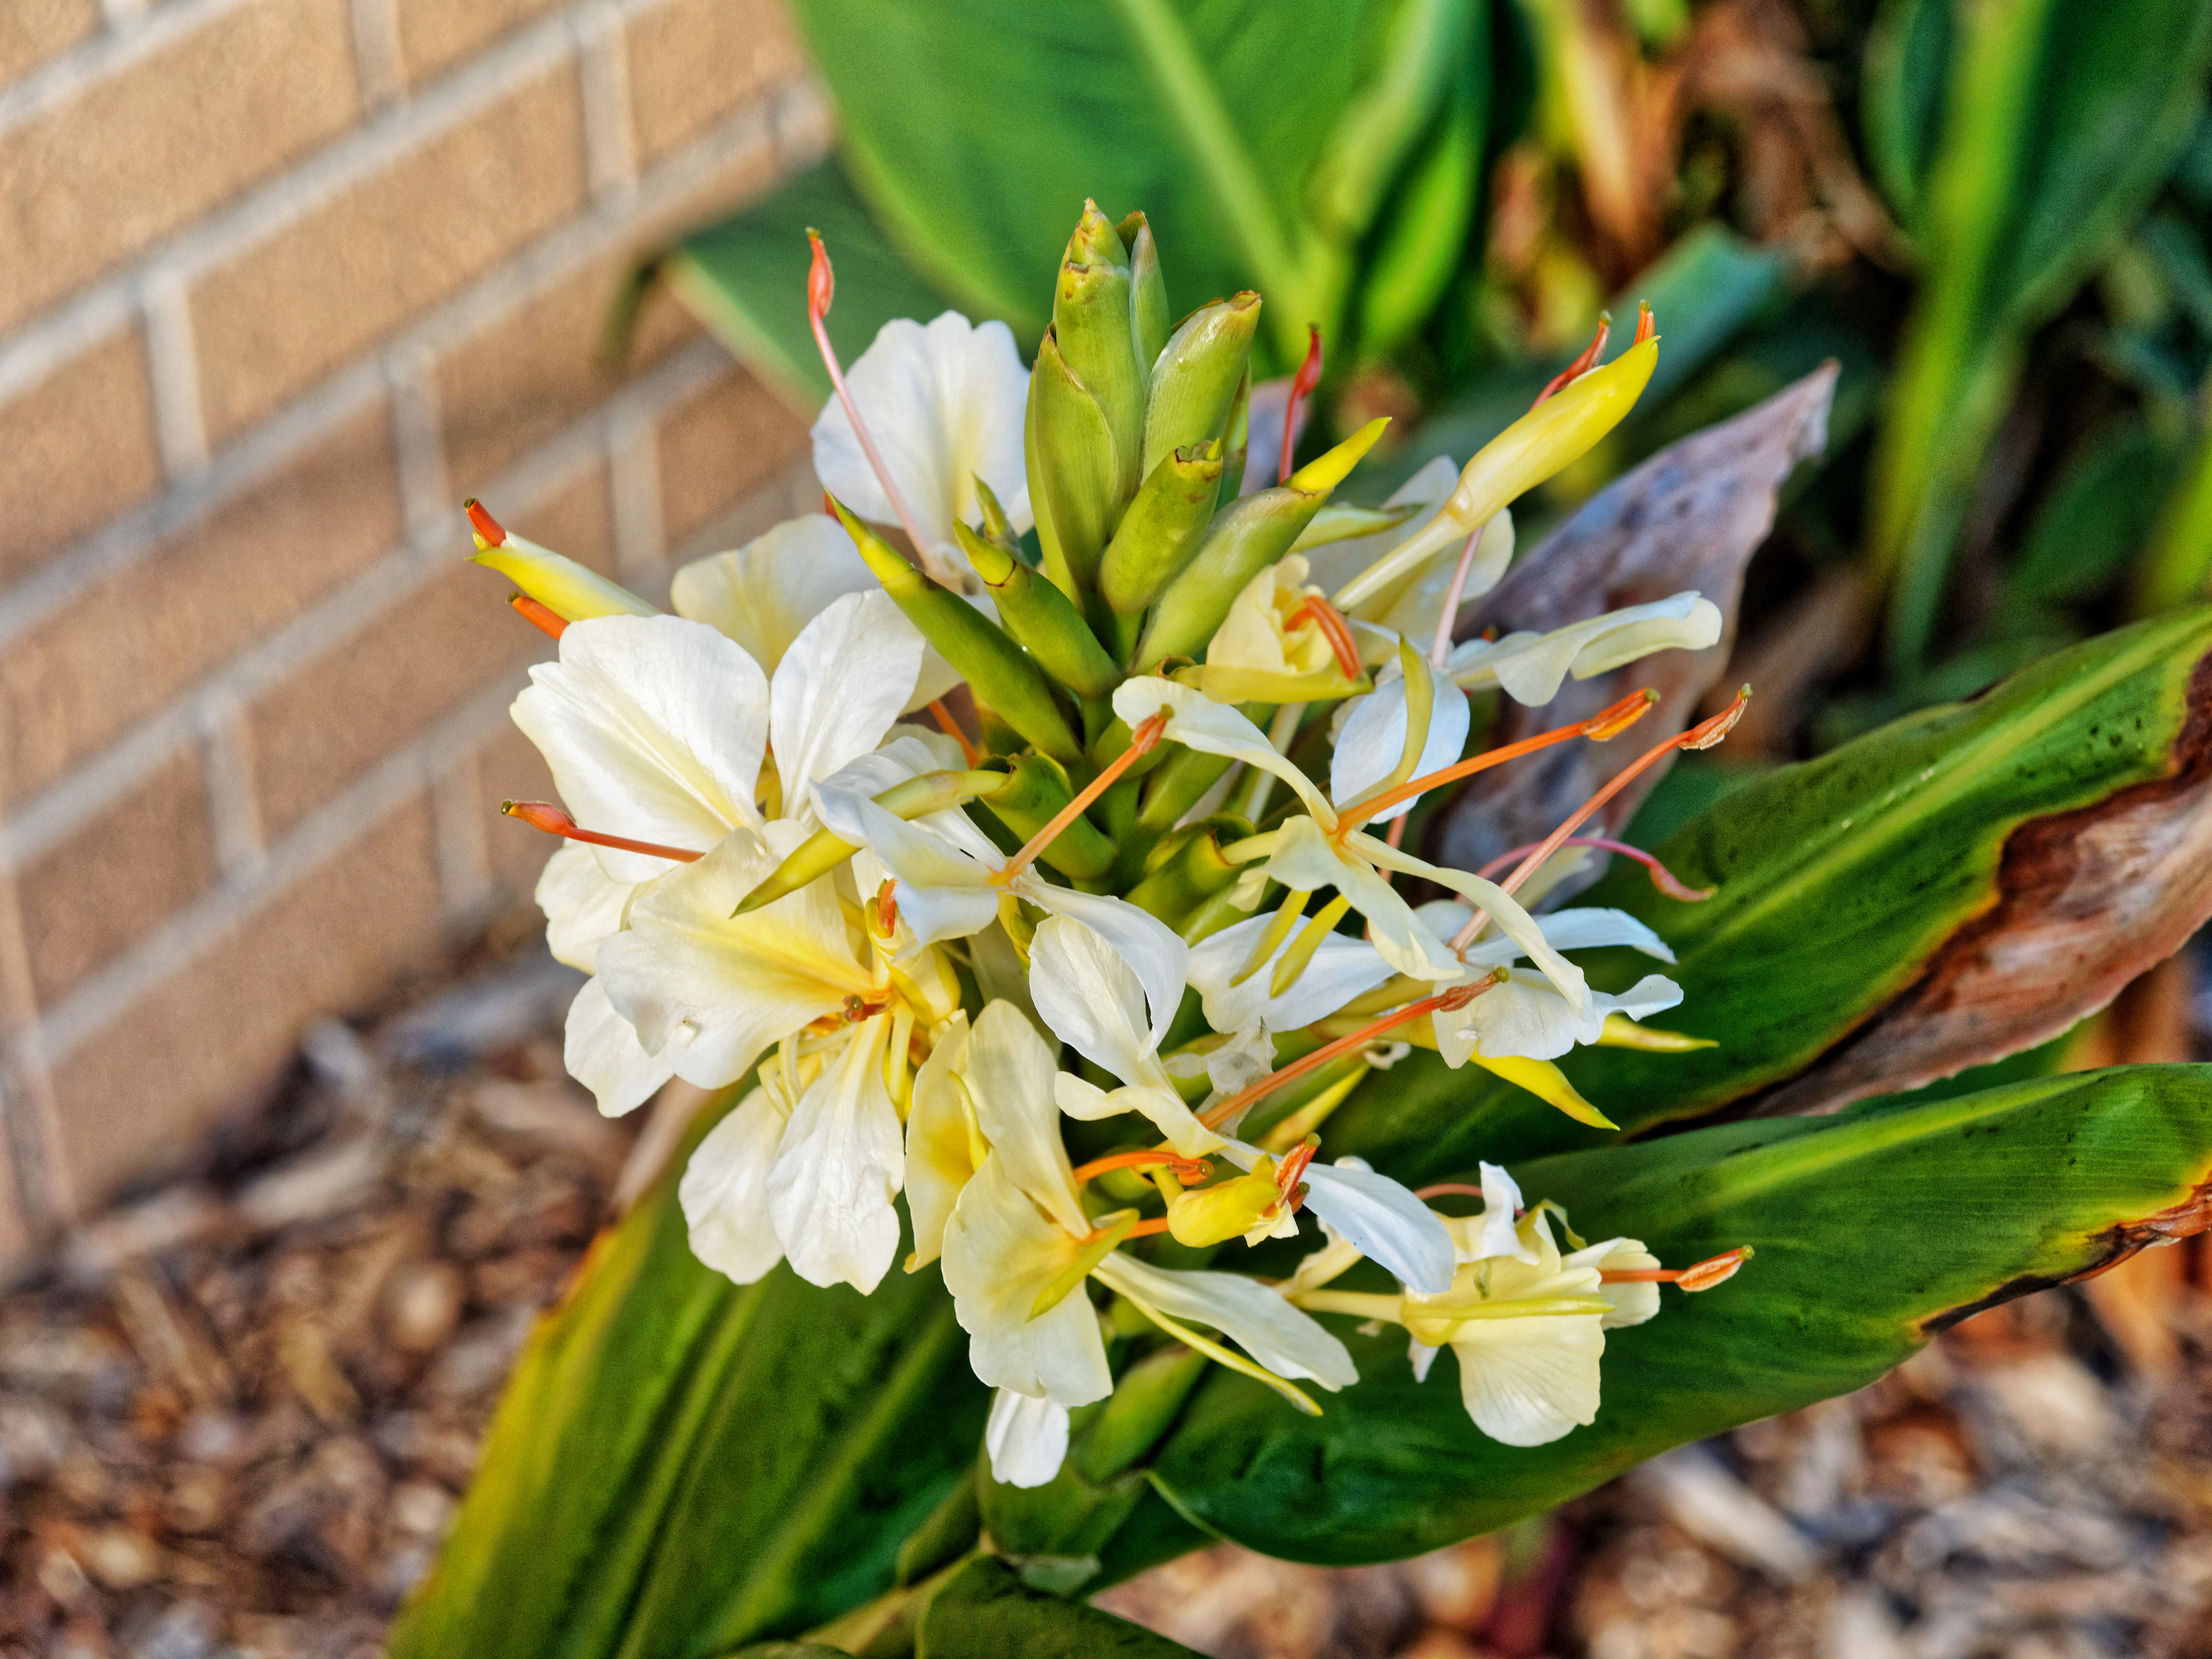 This should be Hedychium-5.jpeg.  Is it missing?